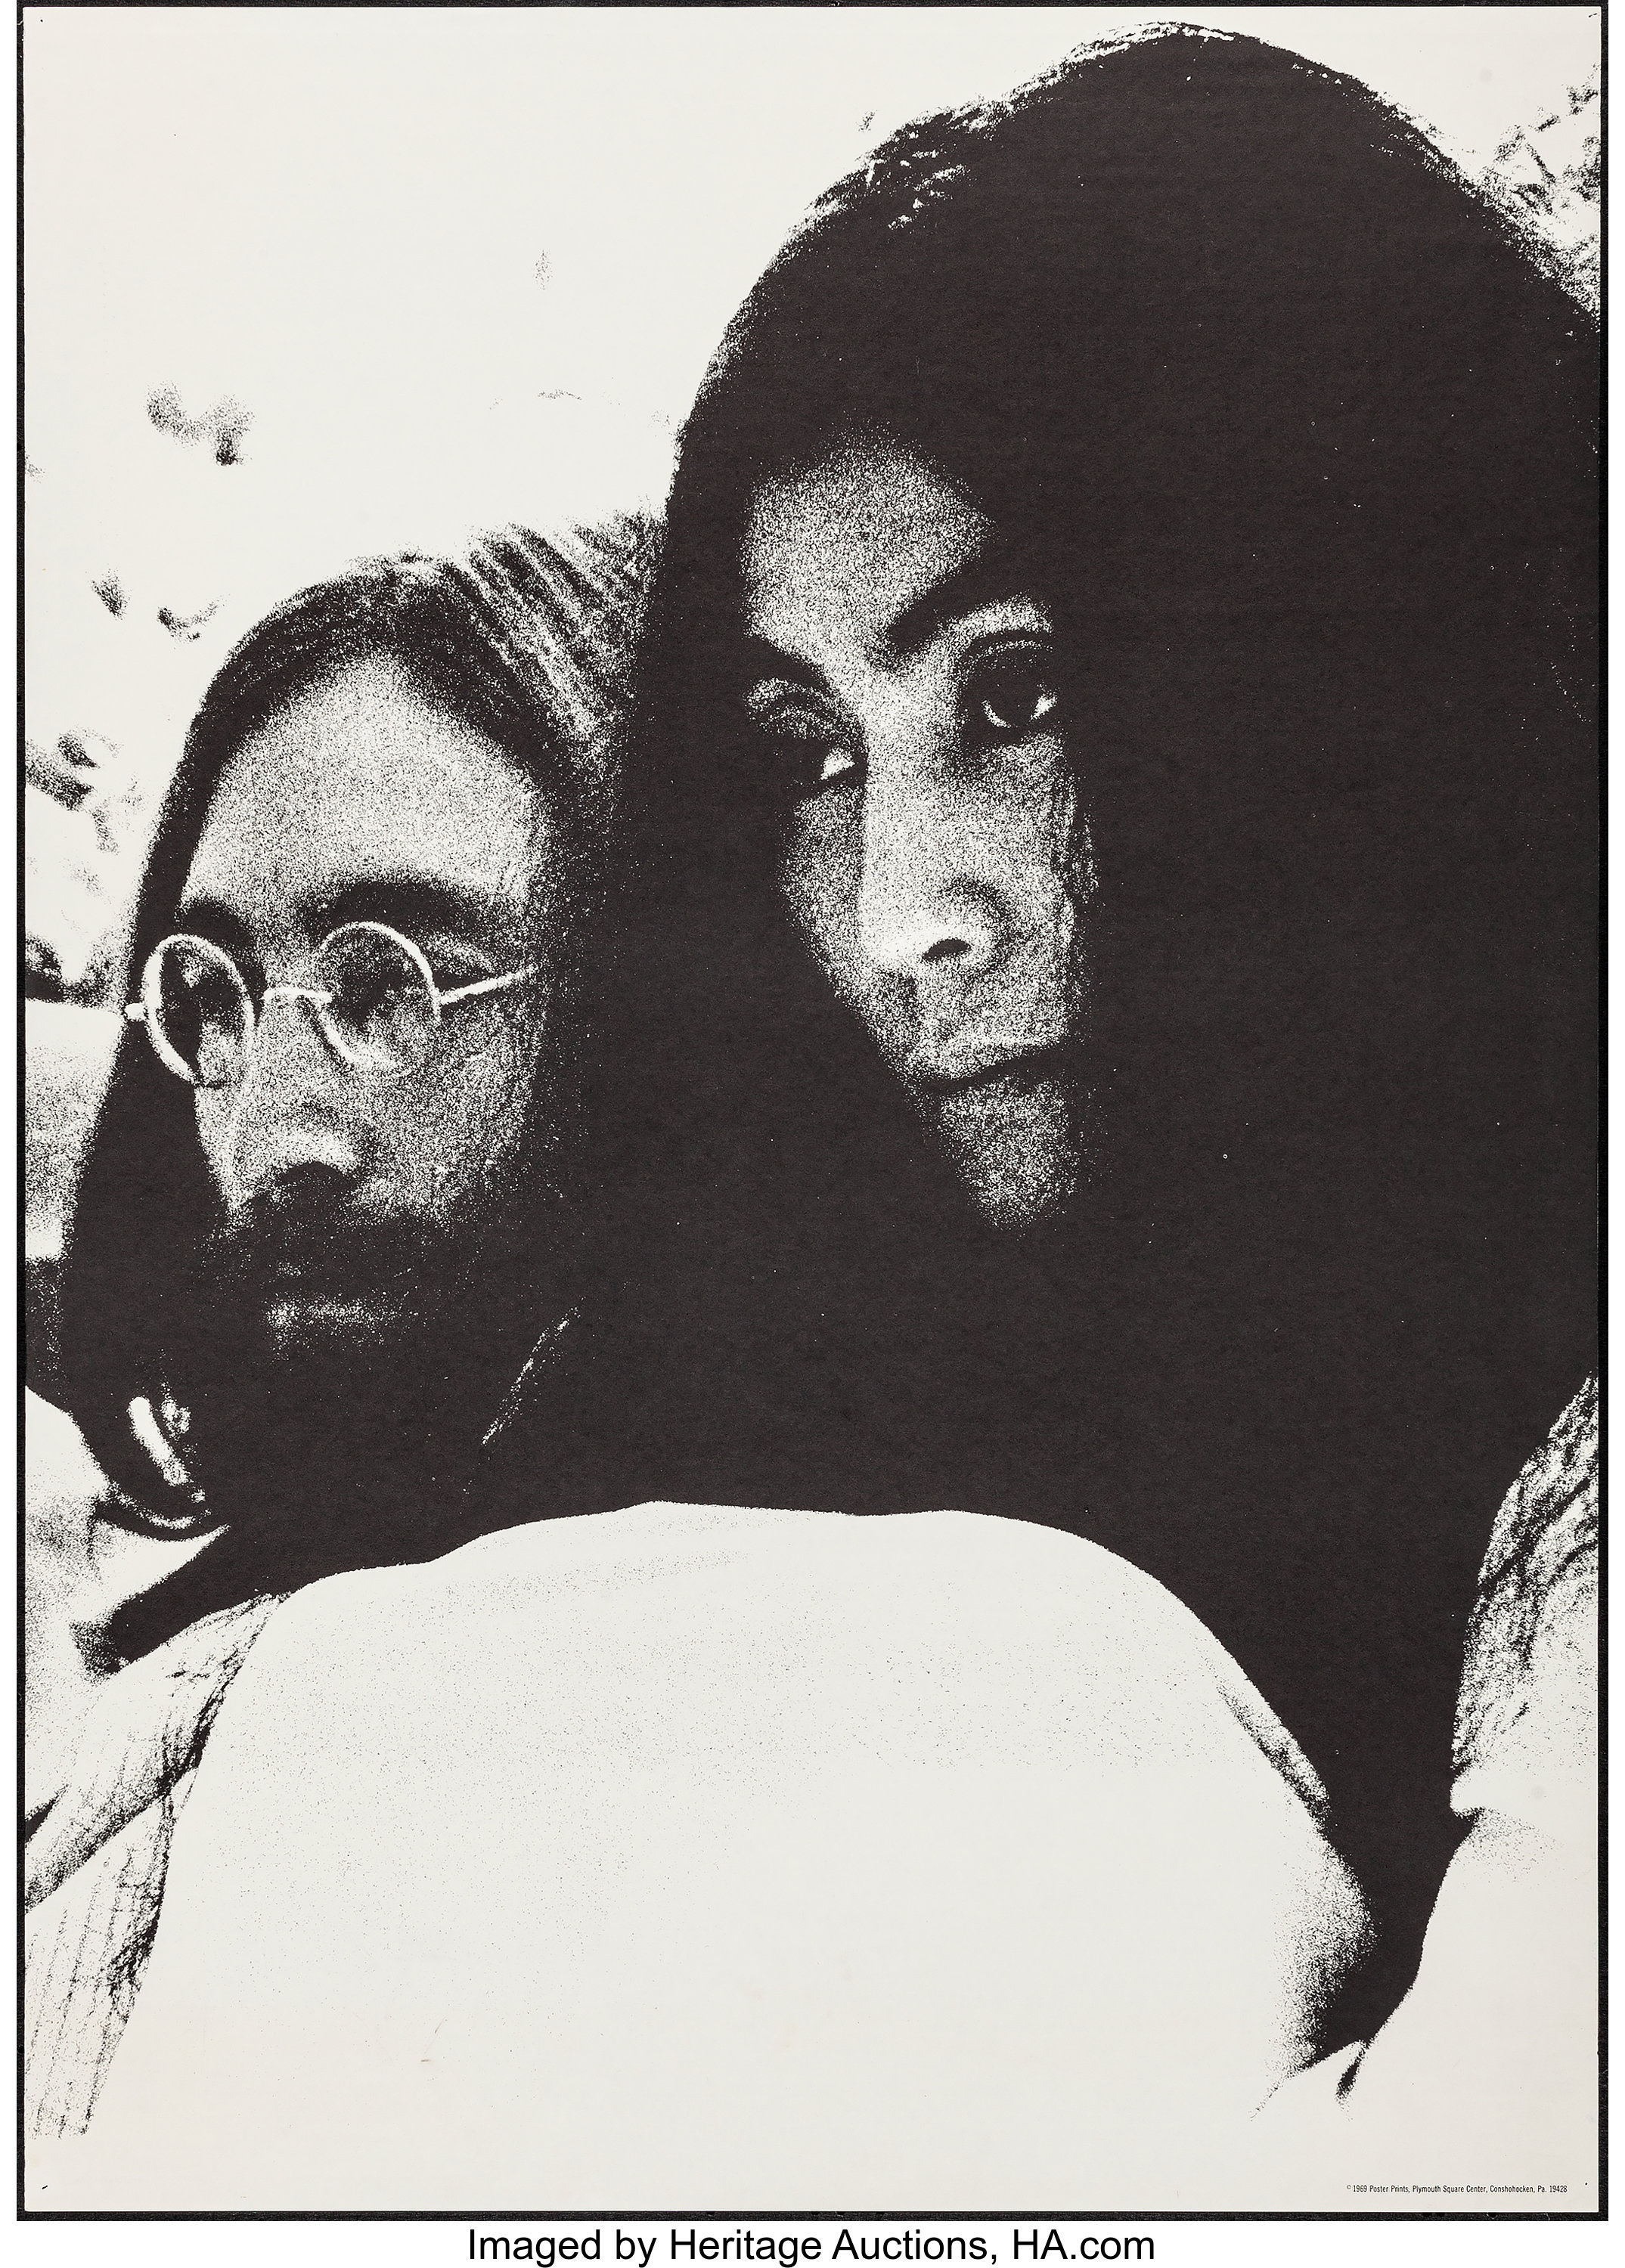 John Lennon And Yoko Ono Poster Prints 1969 Rolled Very Fine Lot 54240 Heritage Auctions